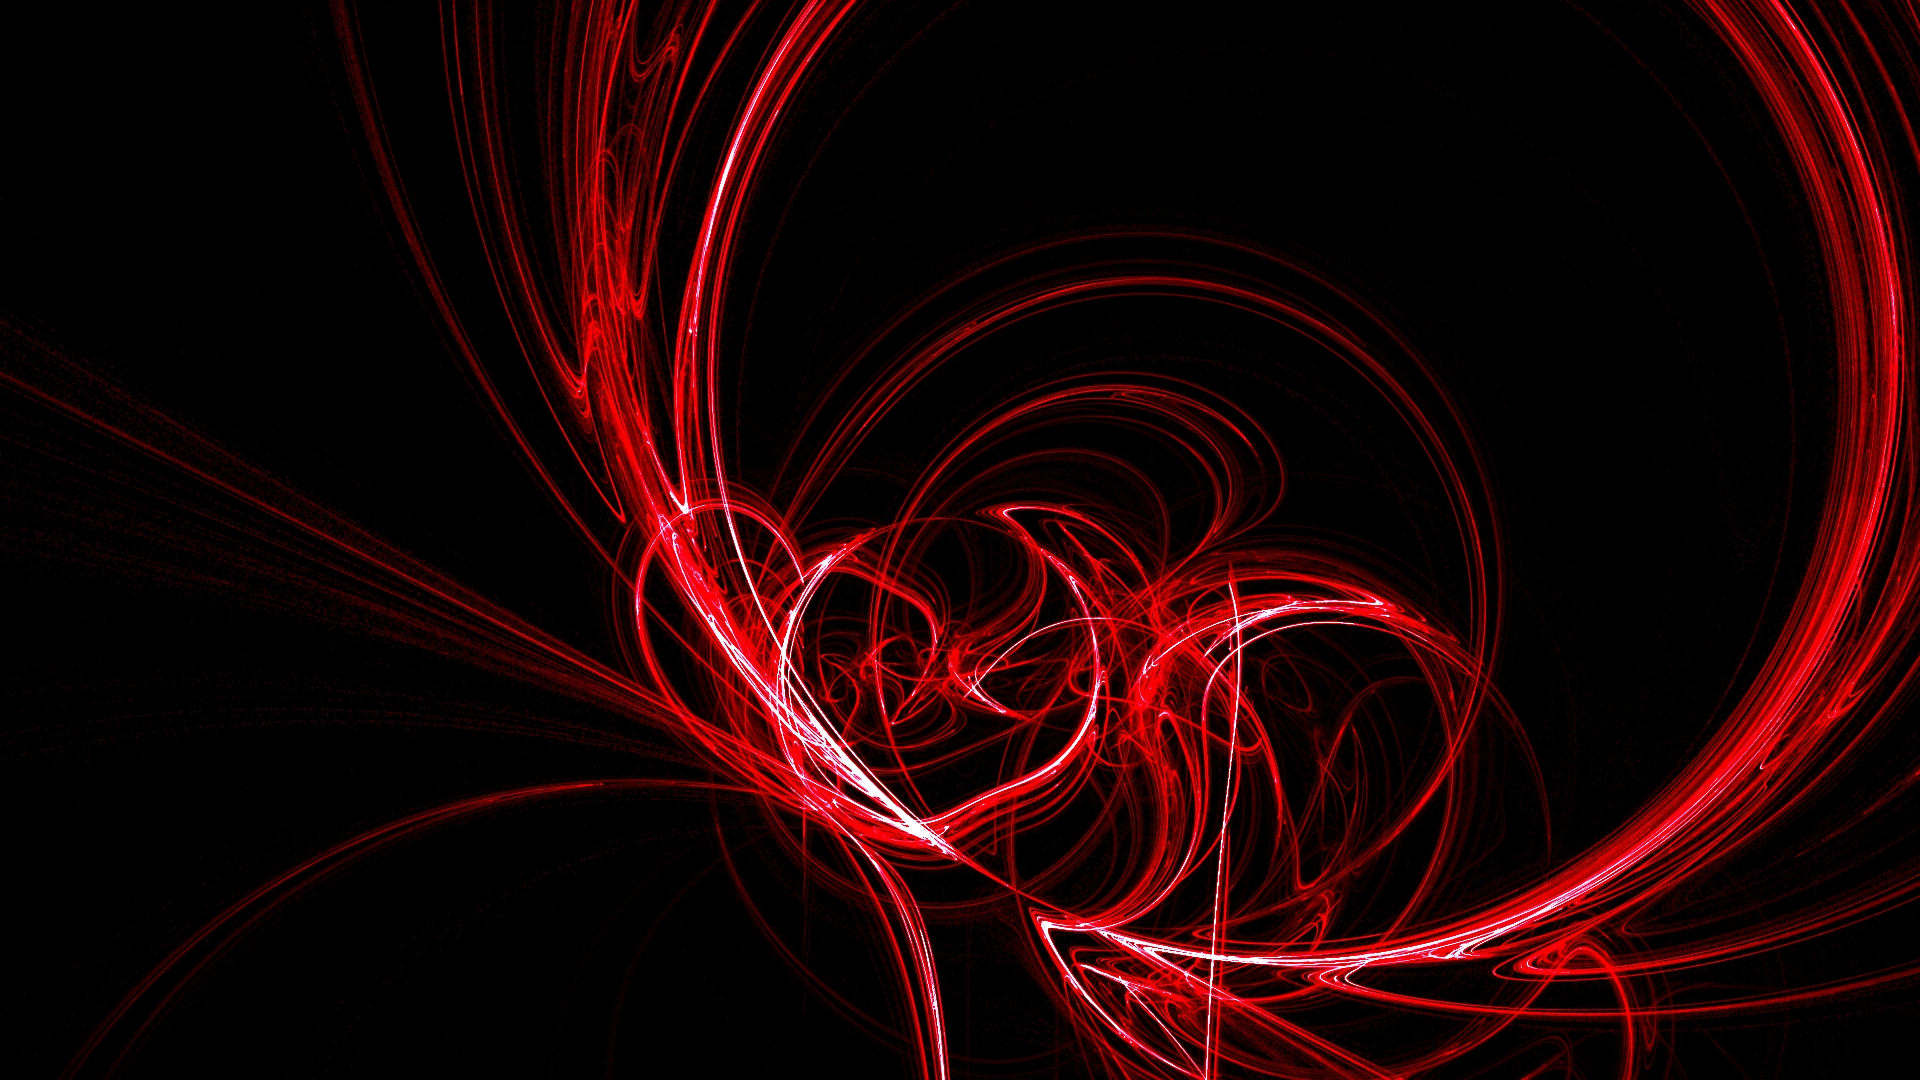 1920x1080 Red And Black Hd Wallpaper Posted By Michelle Tremblay